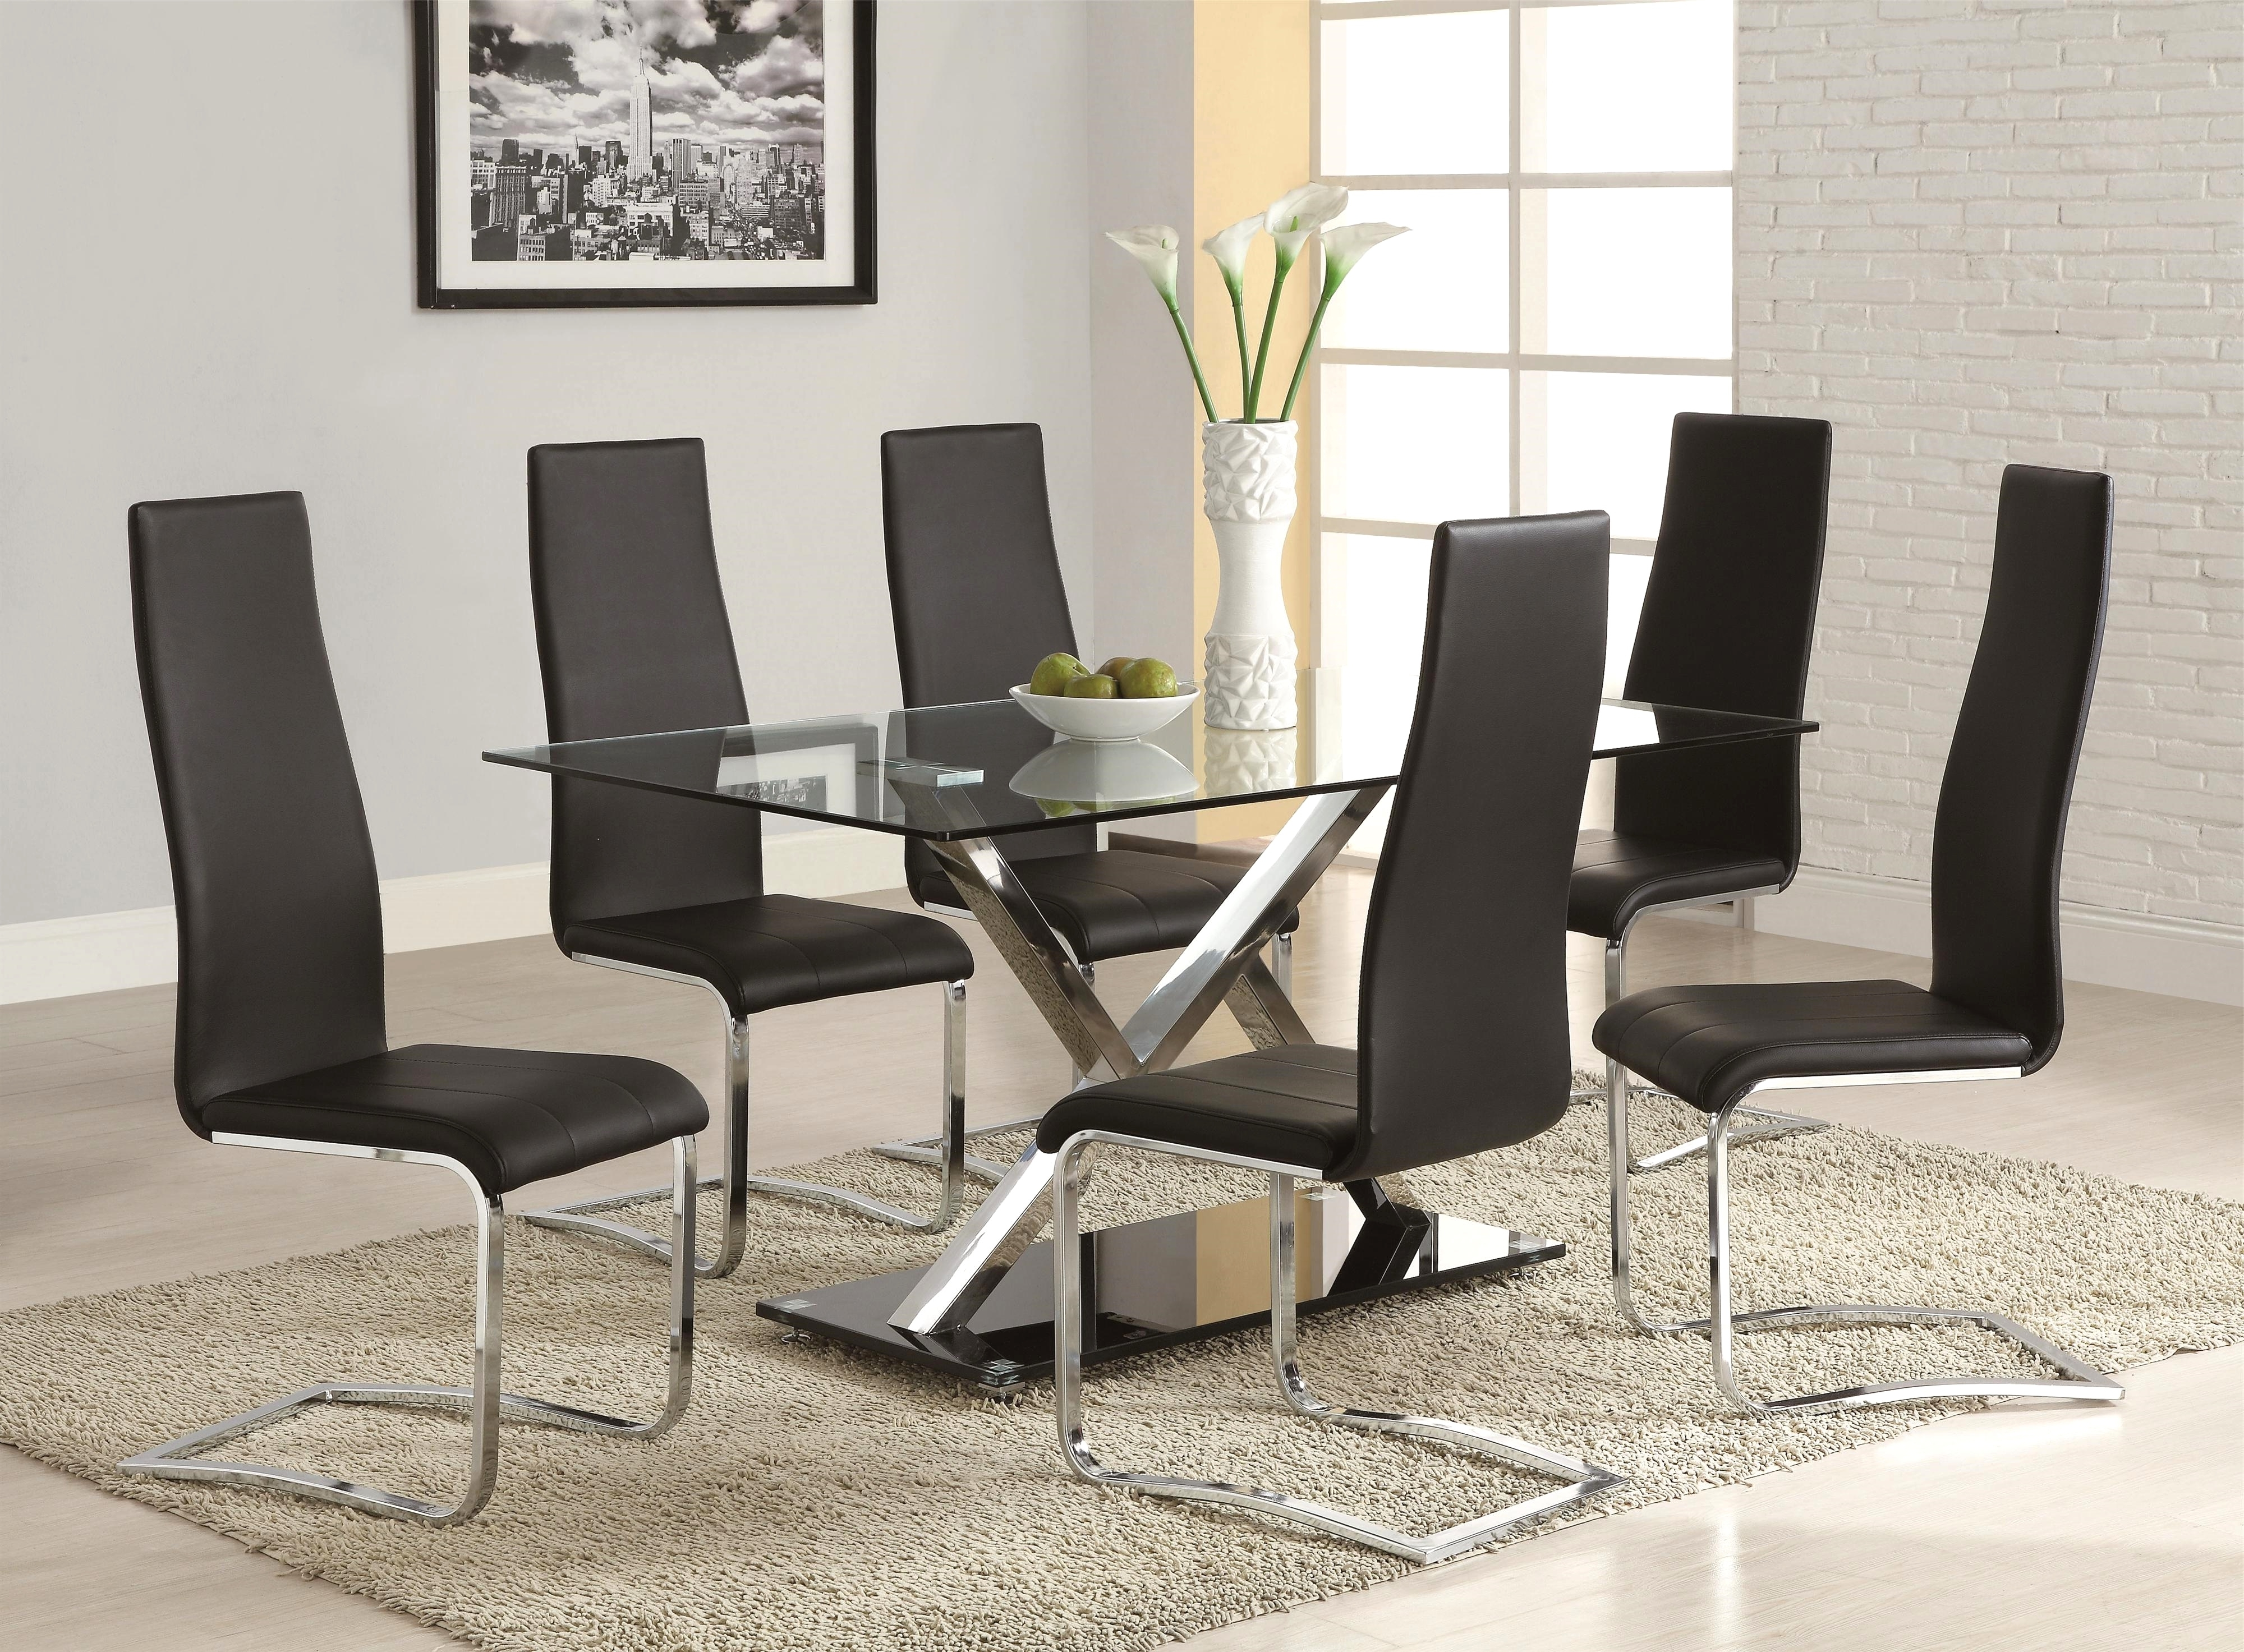 Best And Newest Chrome Leather Dining Chairs Inside Coaster Modern Dining Black Faux Leather Dining Chair With Chrome (View 2 of 25)